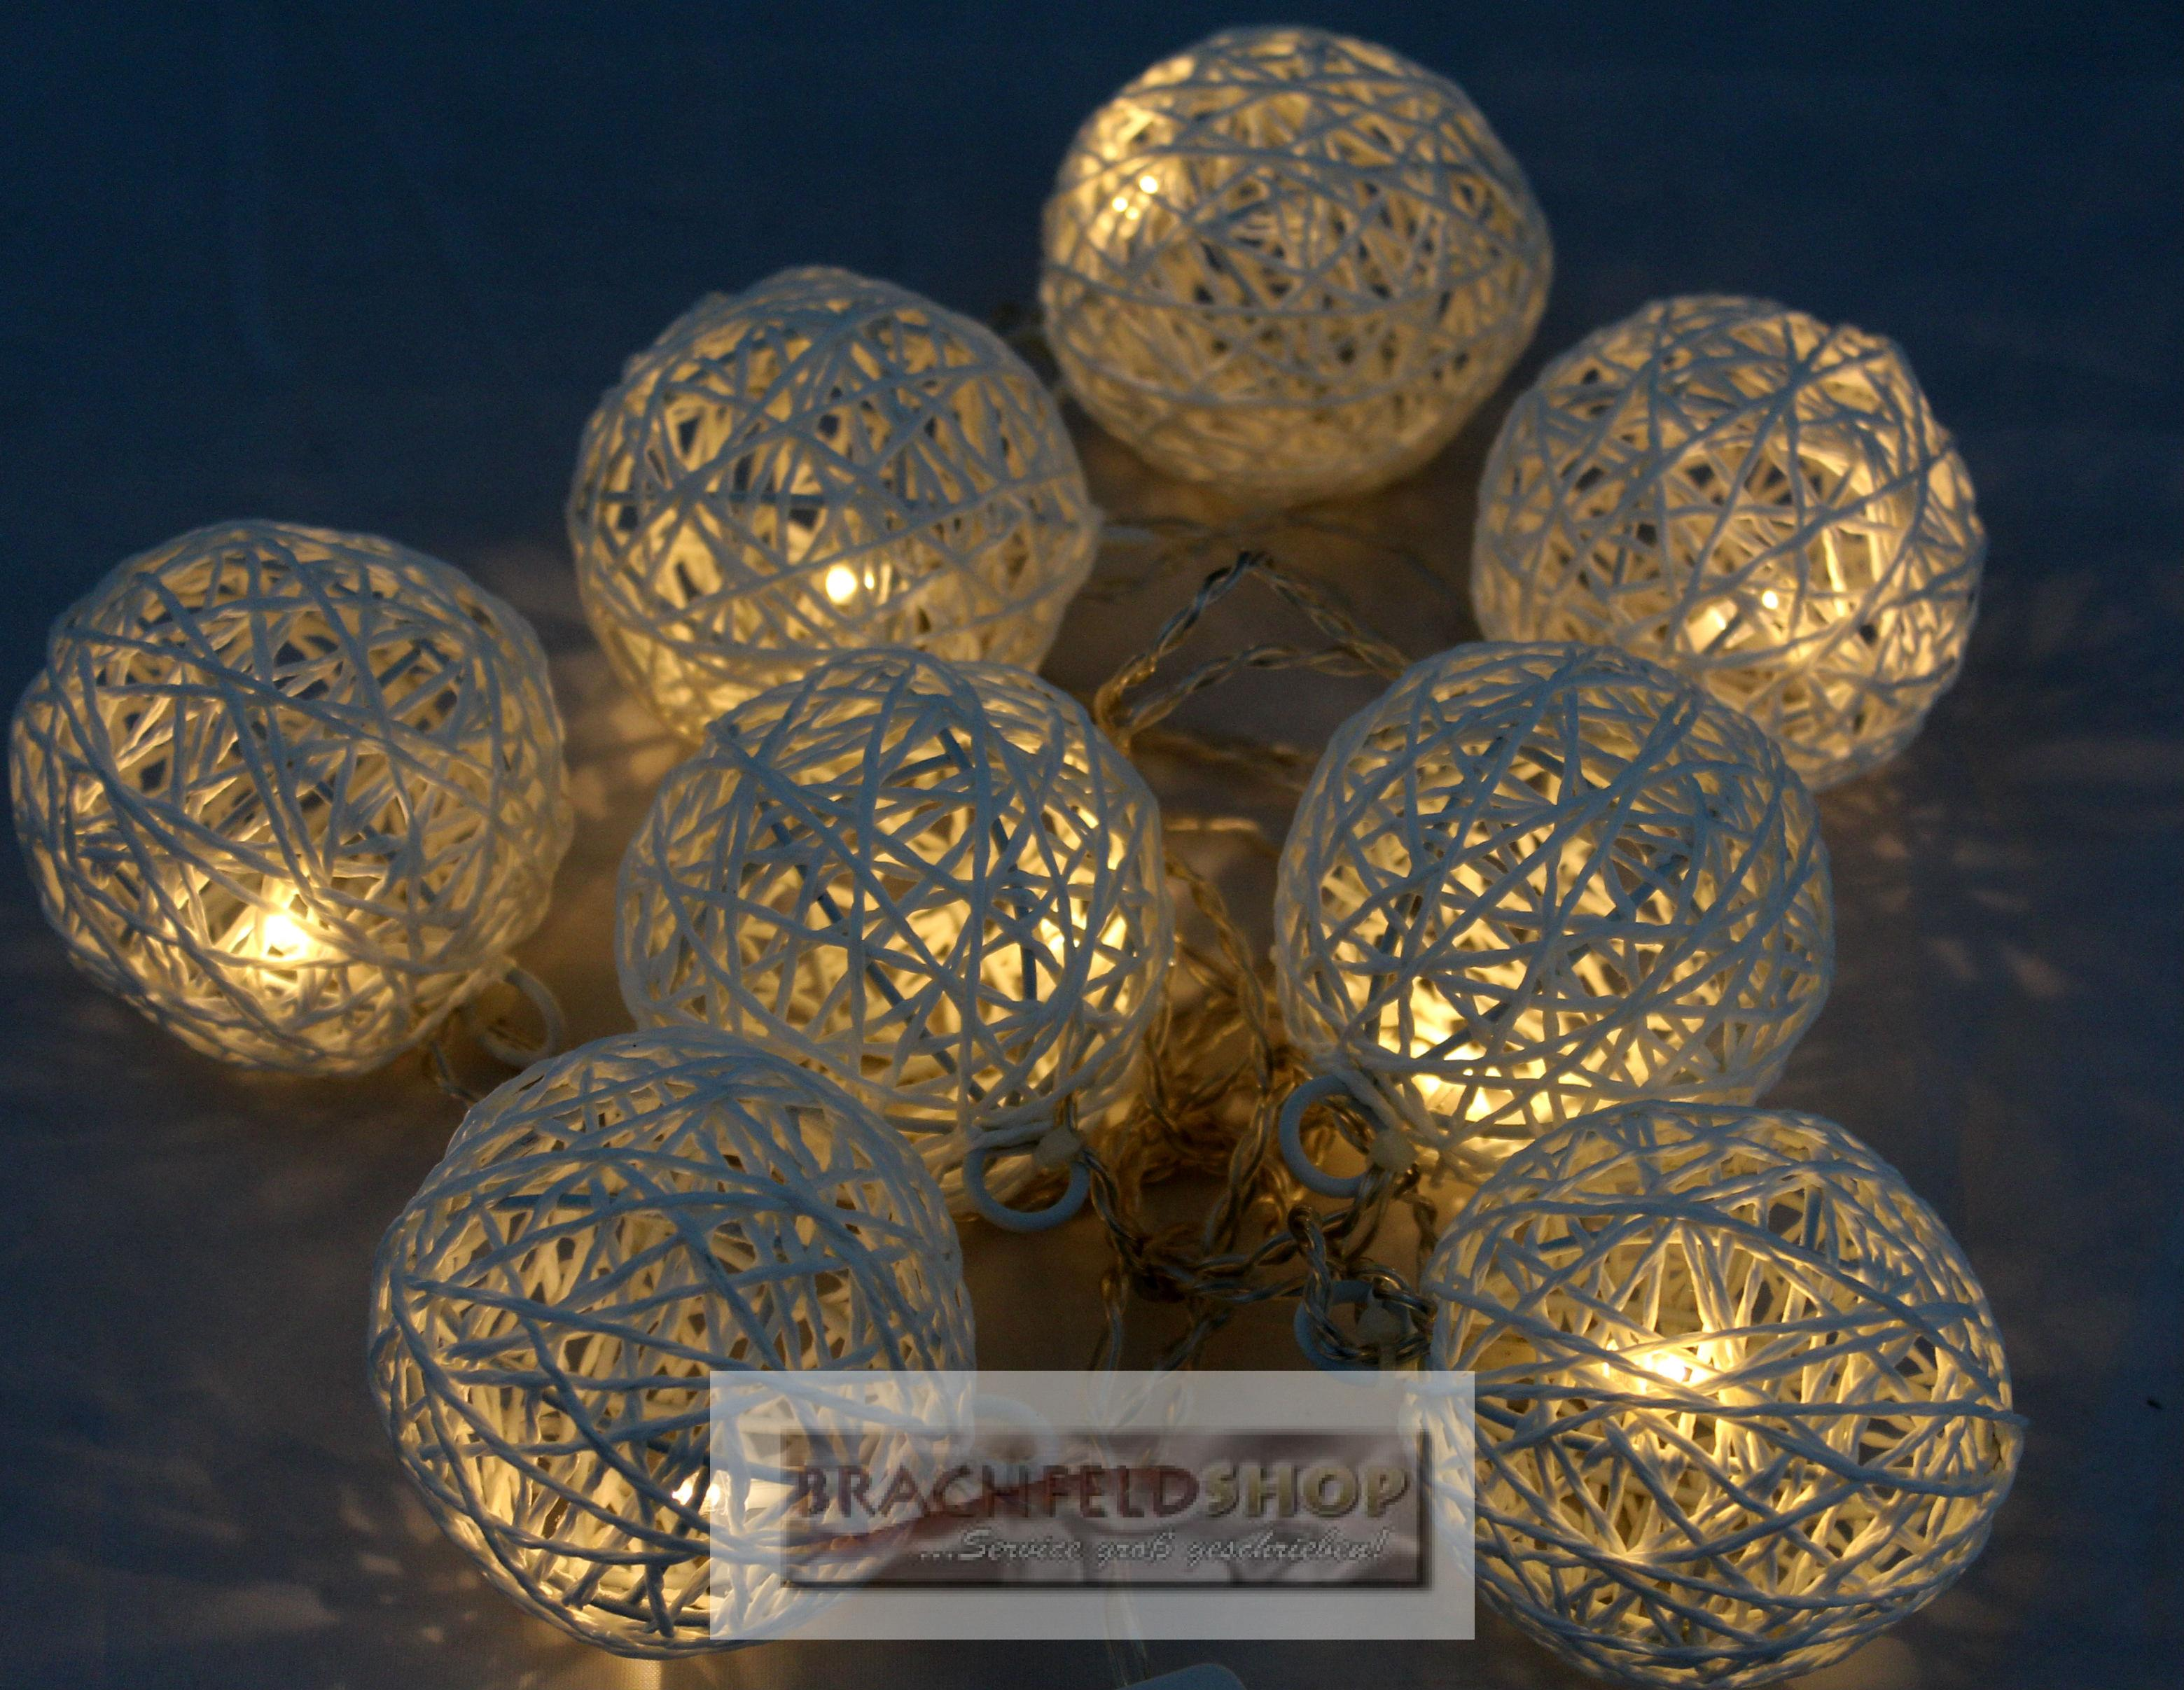 led lichterkette kugel ball 8 rattankugeln dekoration. Black Bedroom Furniture Sets. Home Design Ideas